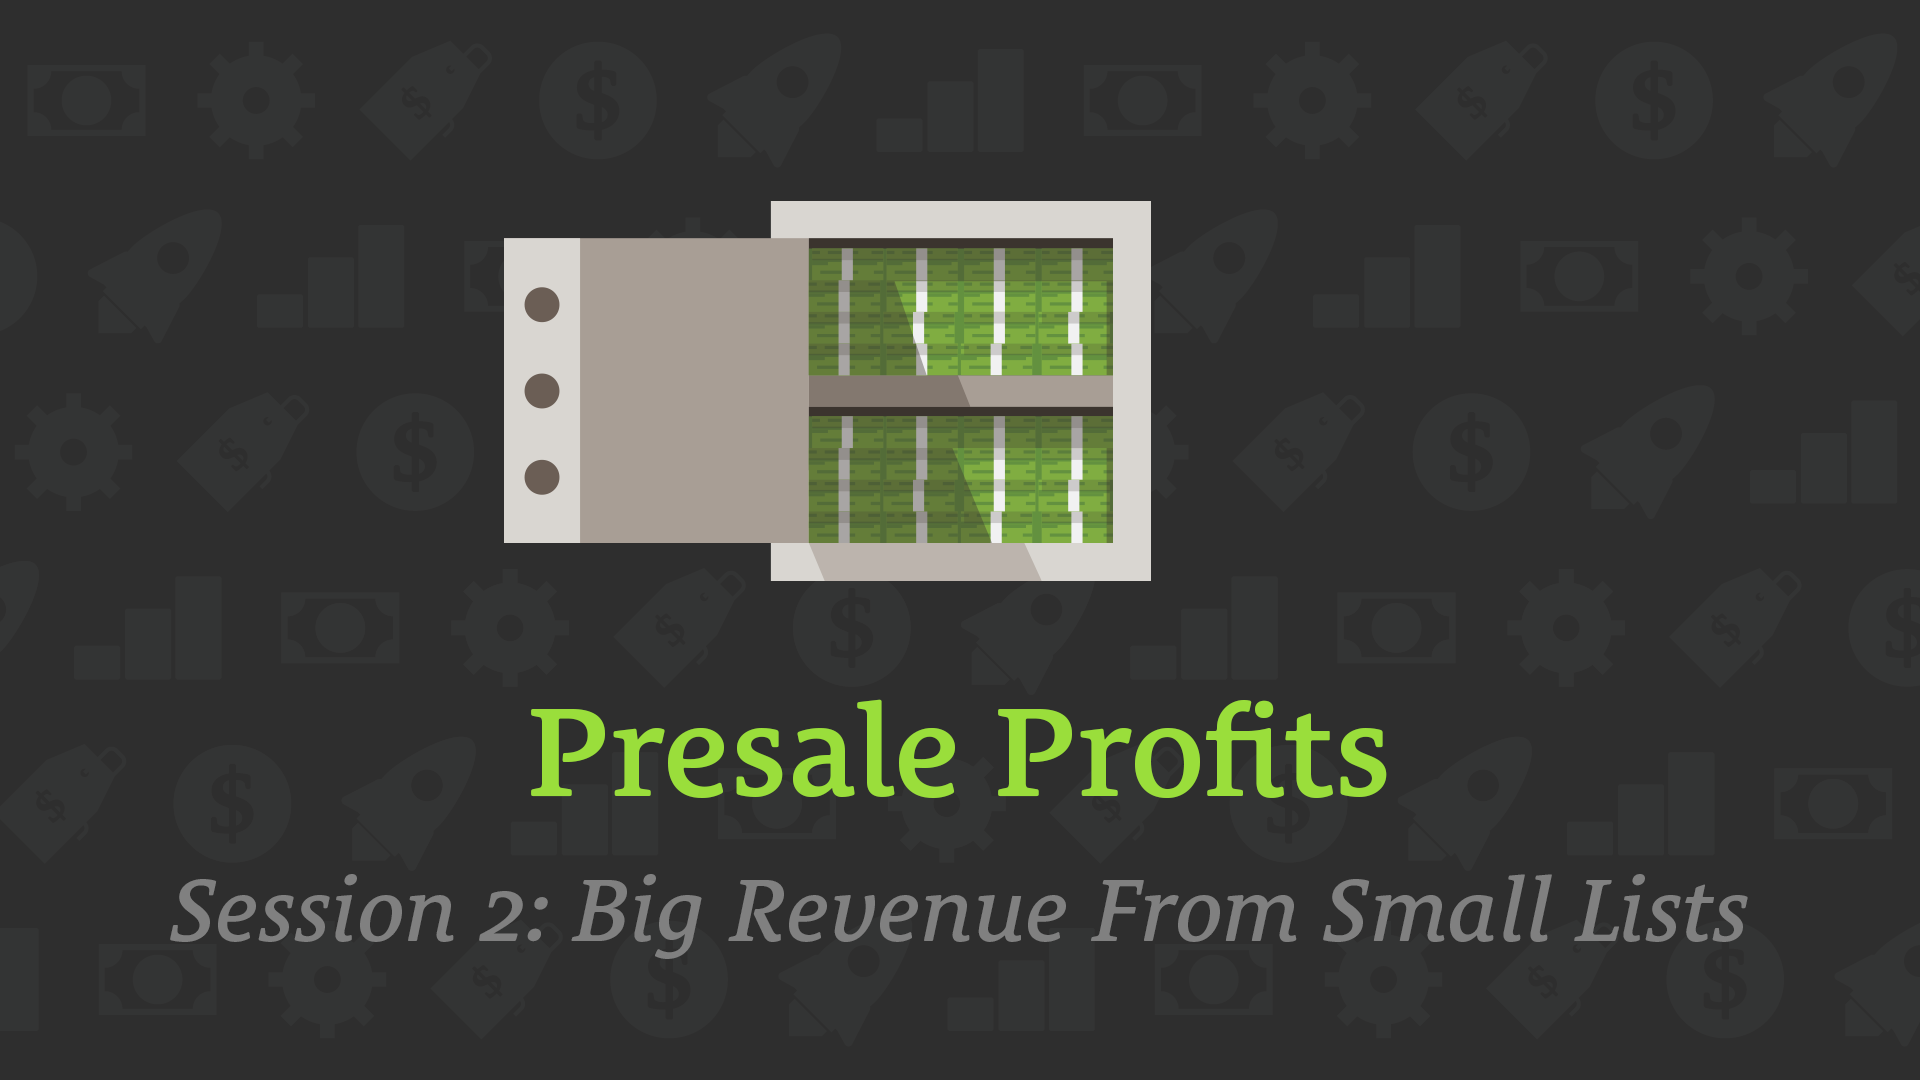 Presale Profits - Session 2: Big Revenue From Small Lists